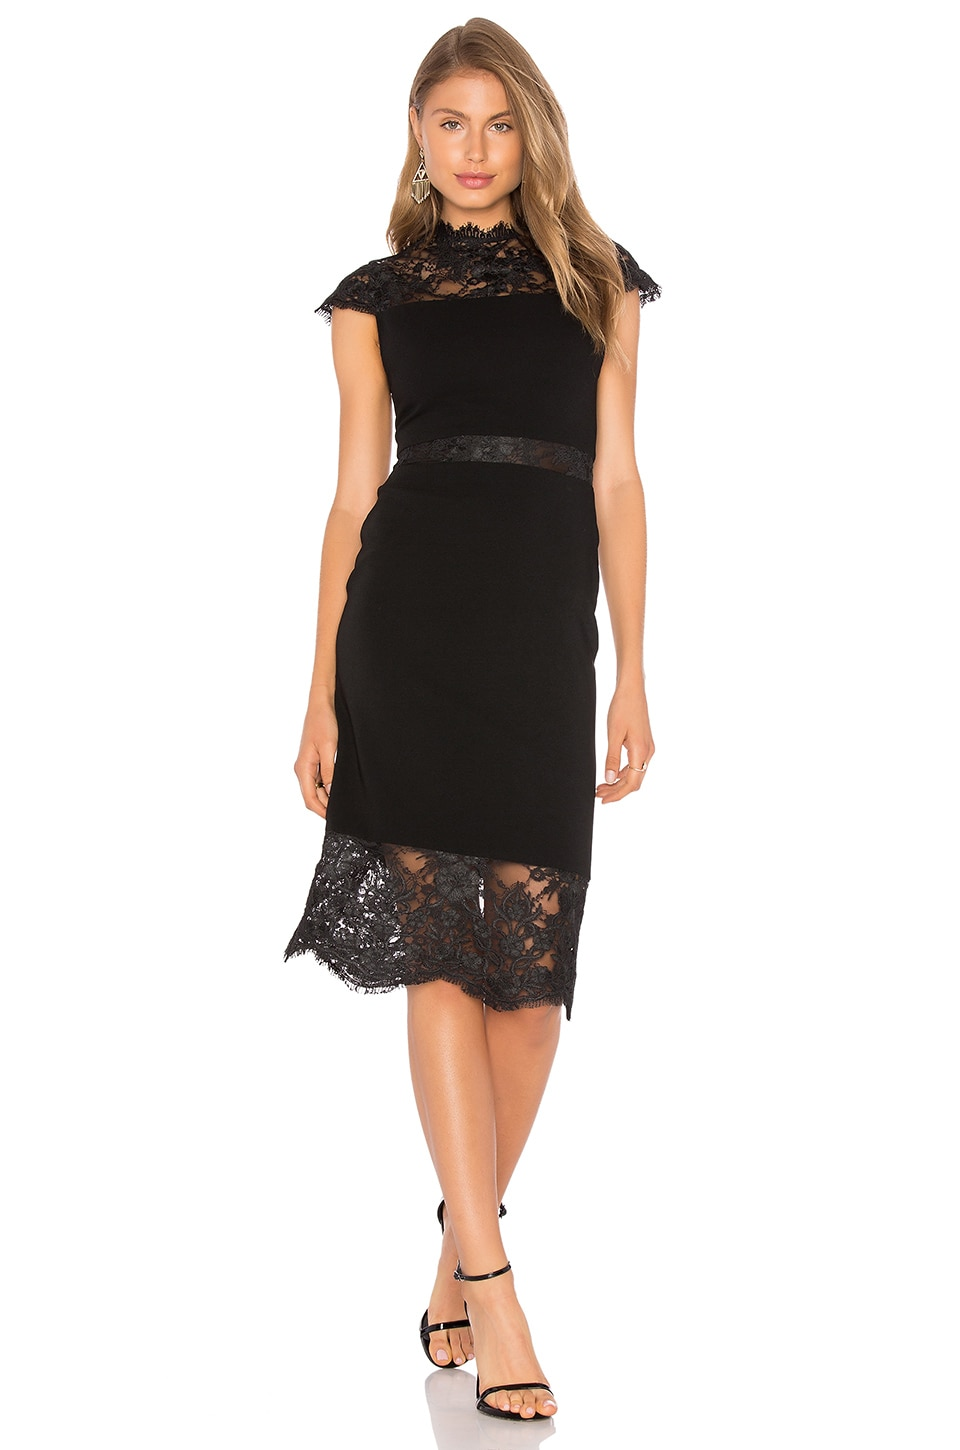 buy Kim Lace Midi Dress by Alice + Olivia dresses online shopping